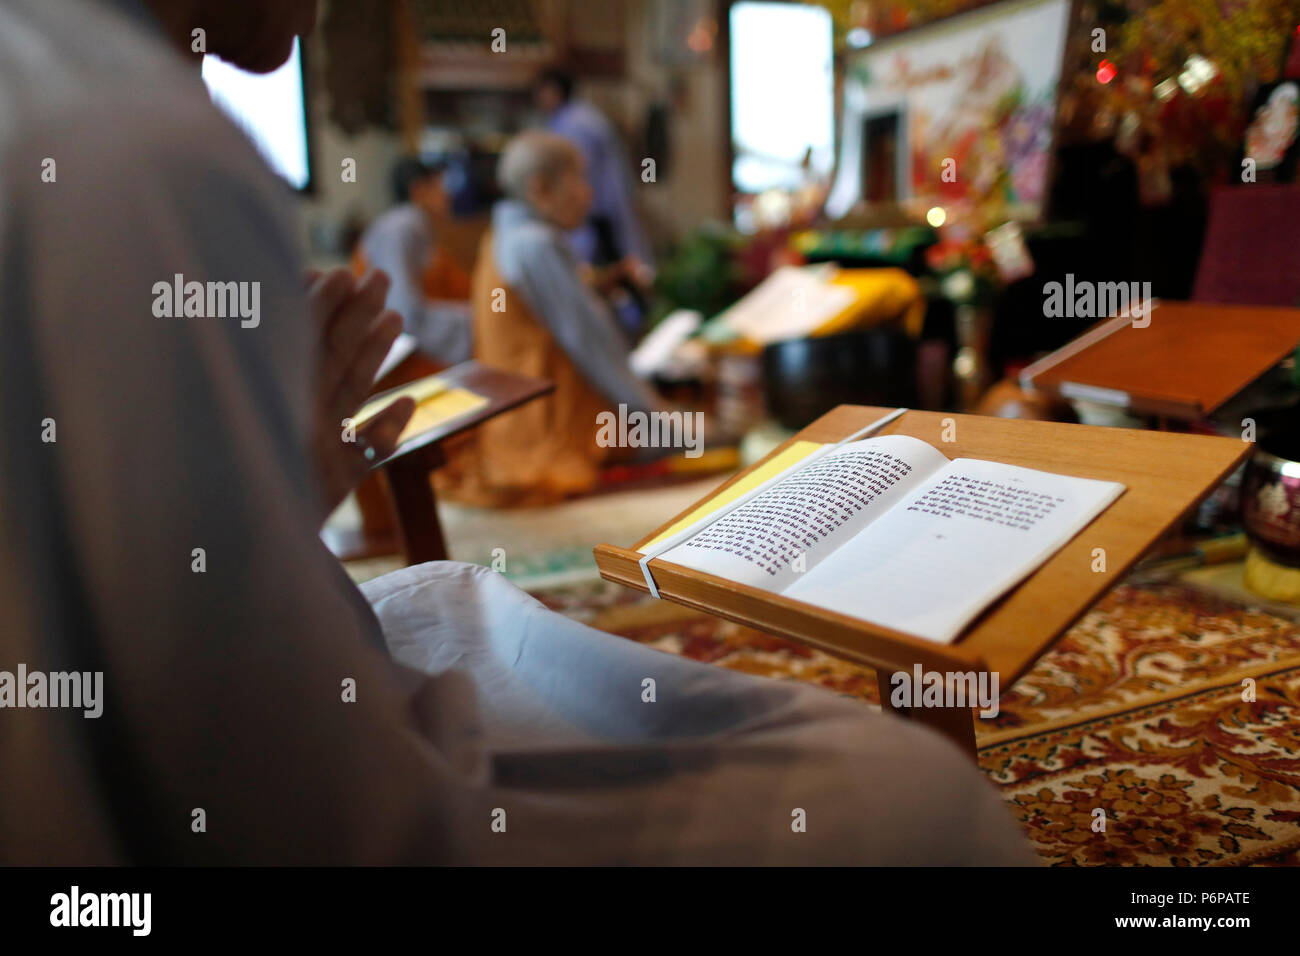 Chua Tu An Buddhist temple. Buddhist celebration.  Saint-Pierre en Faucigny. France. - Stock Image